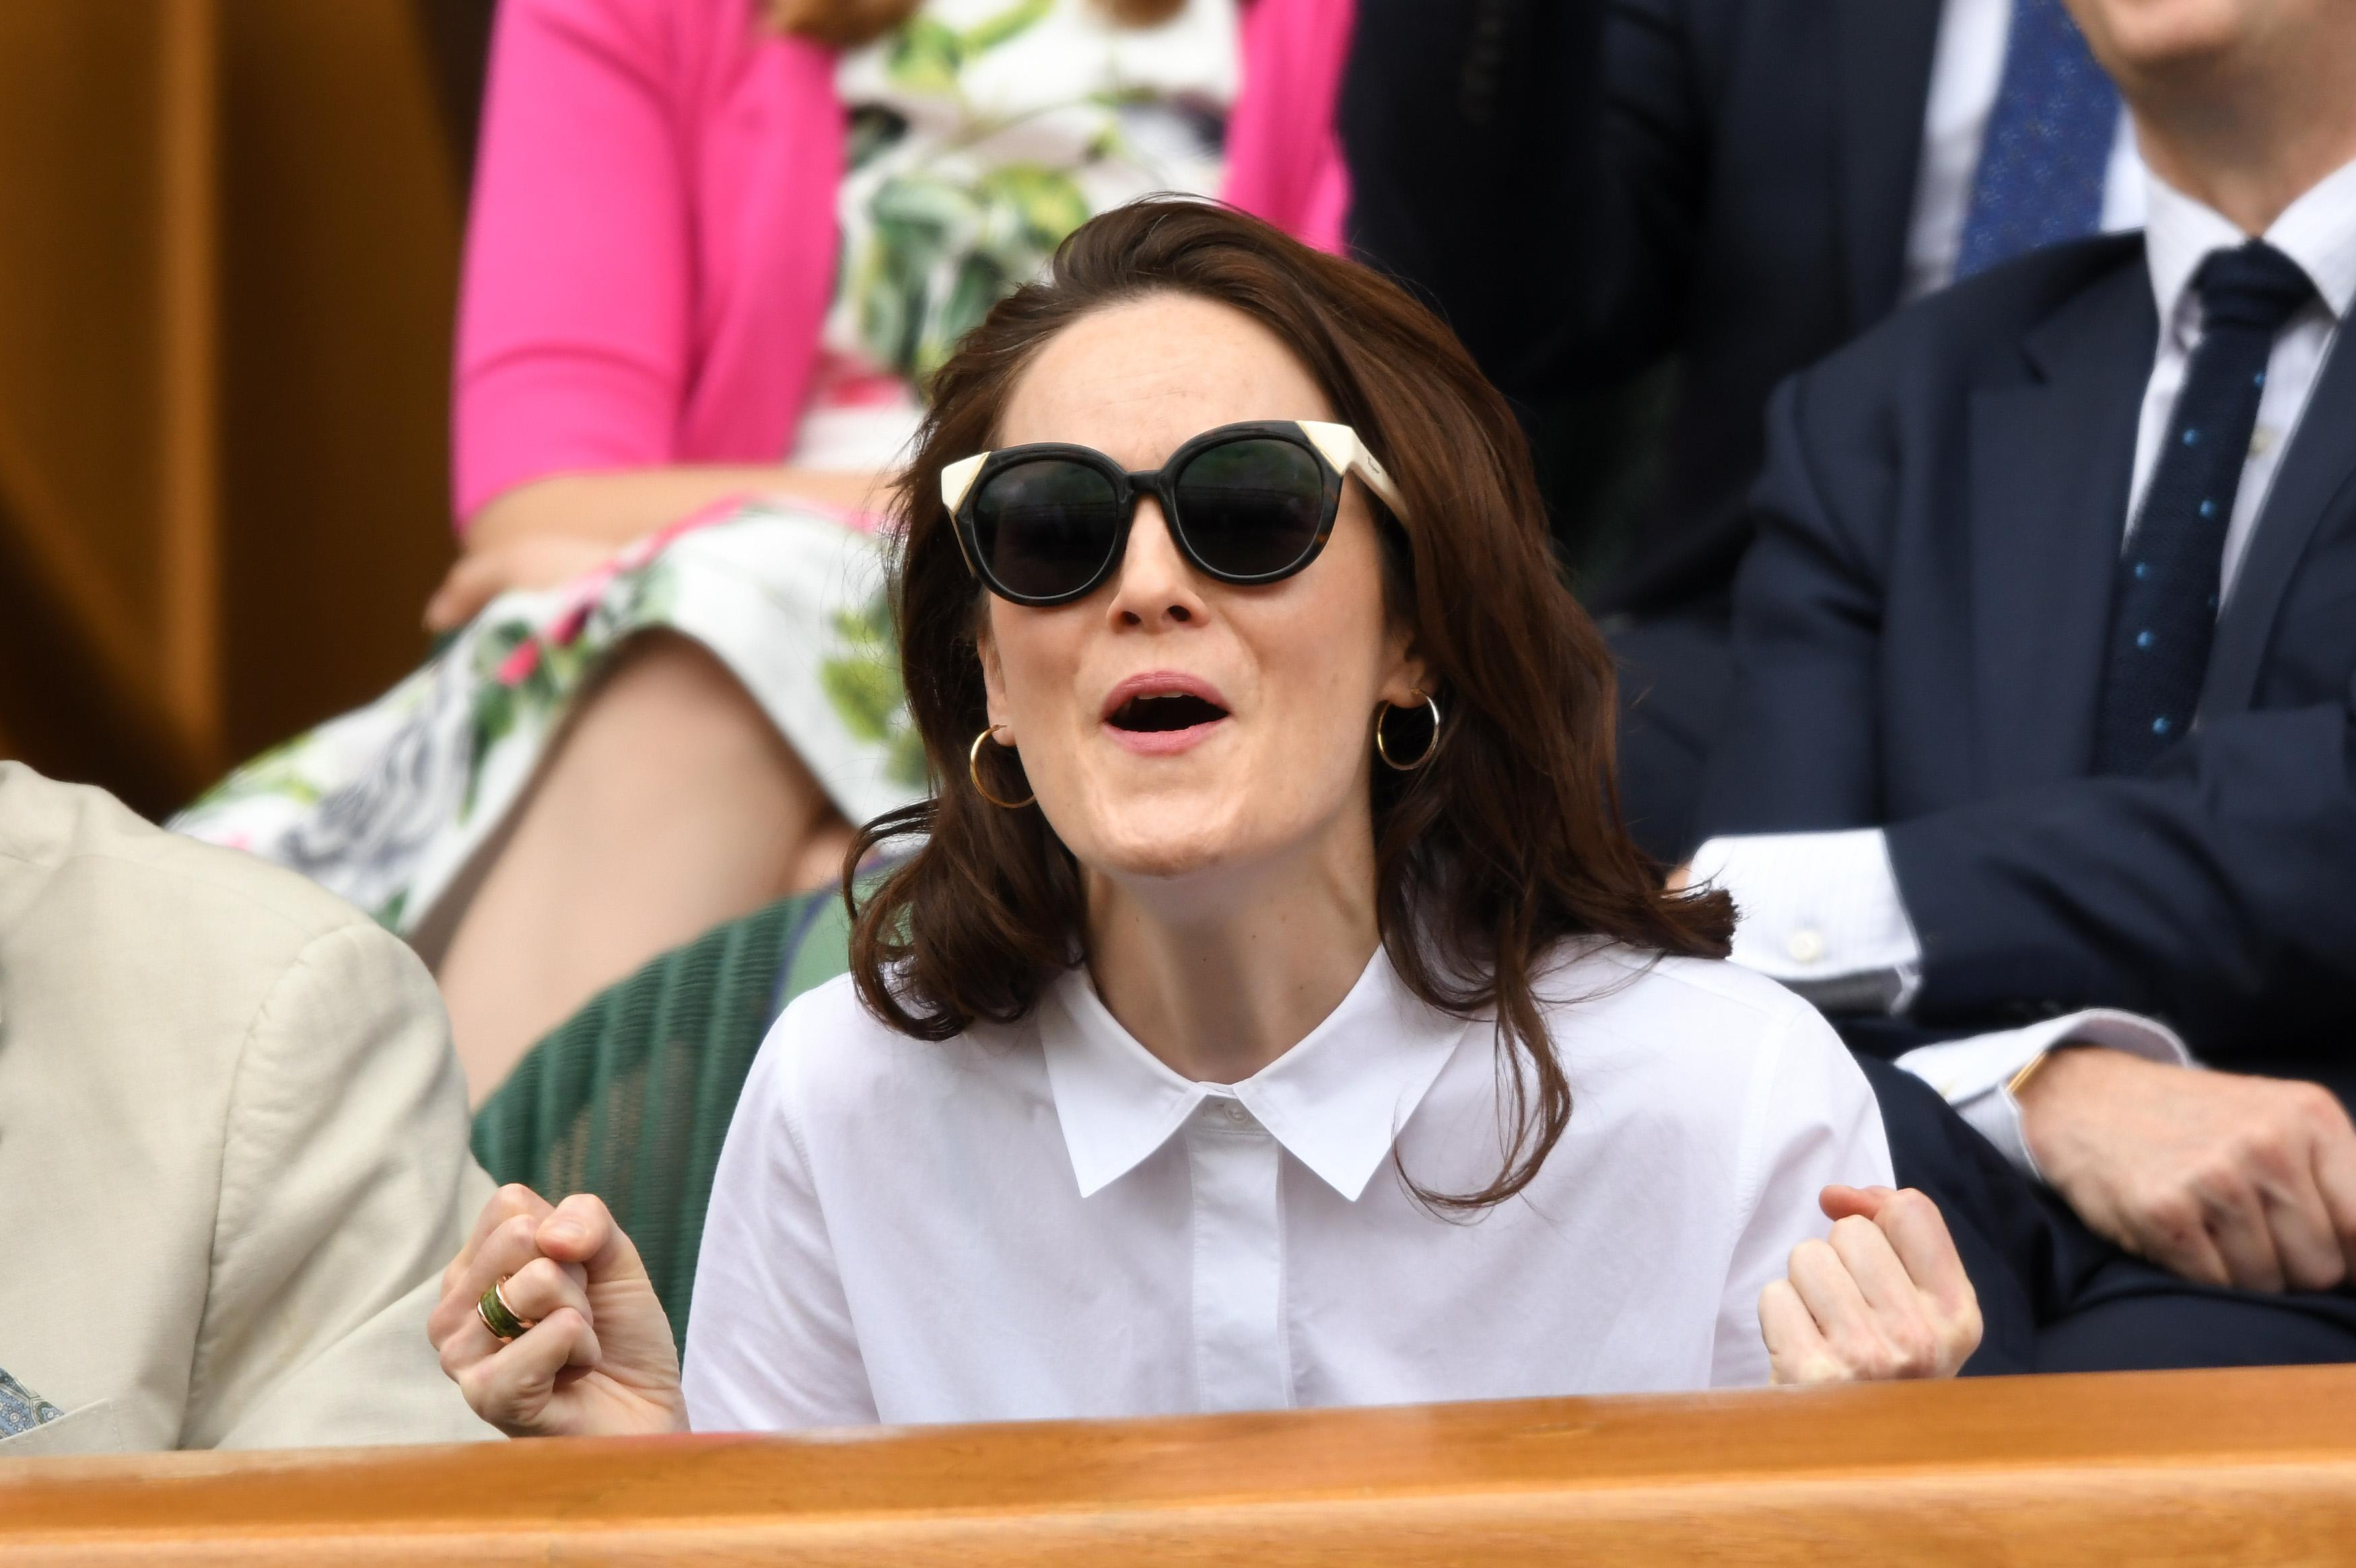 Downton Abbey star Michelle Dockery also enjoyed the game from the Royal Box